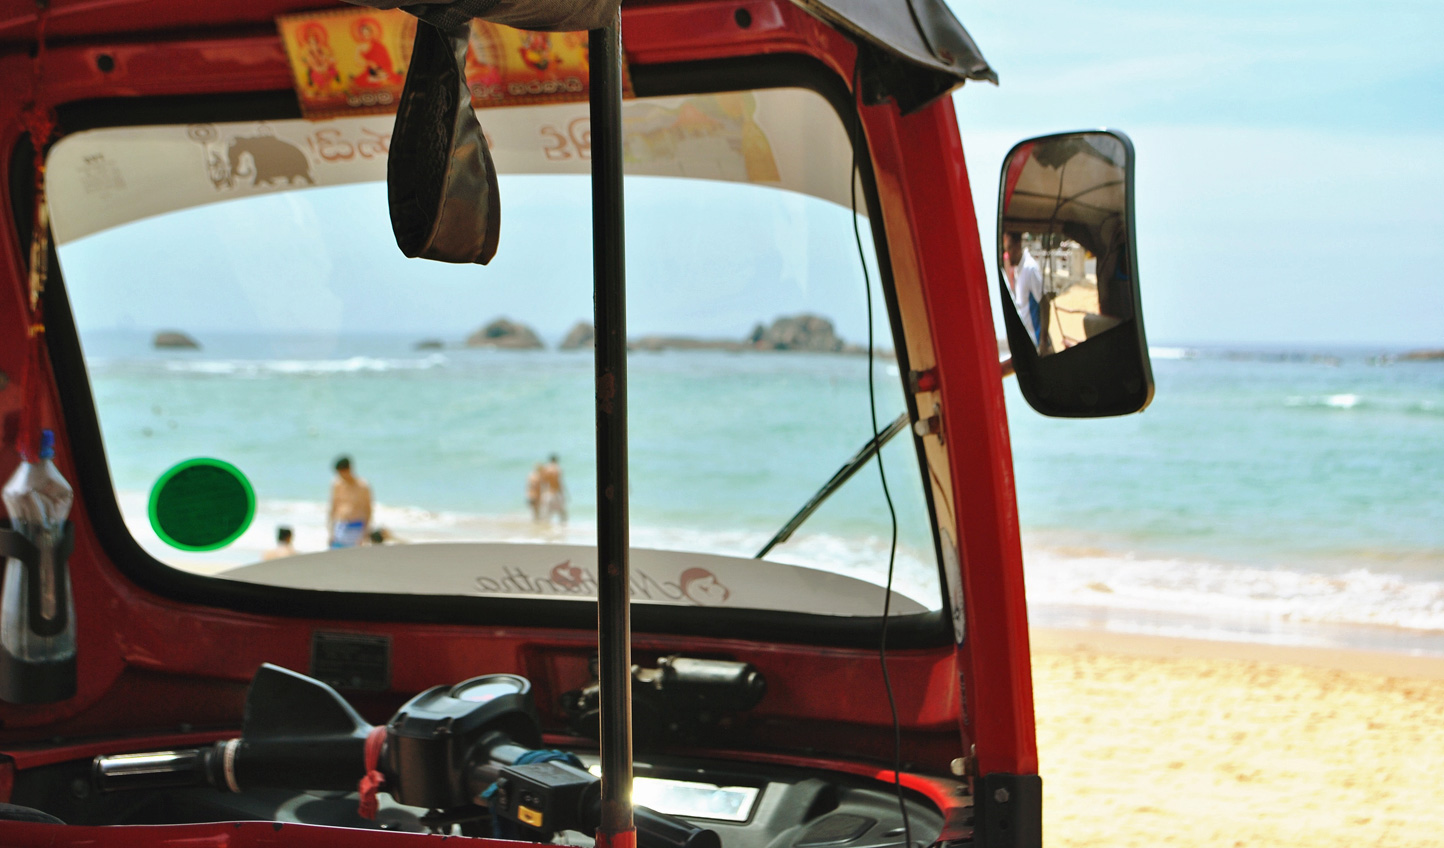 Discover rolling beach after rolling beach